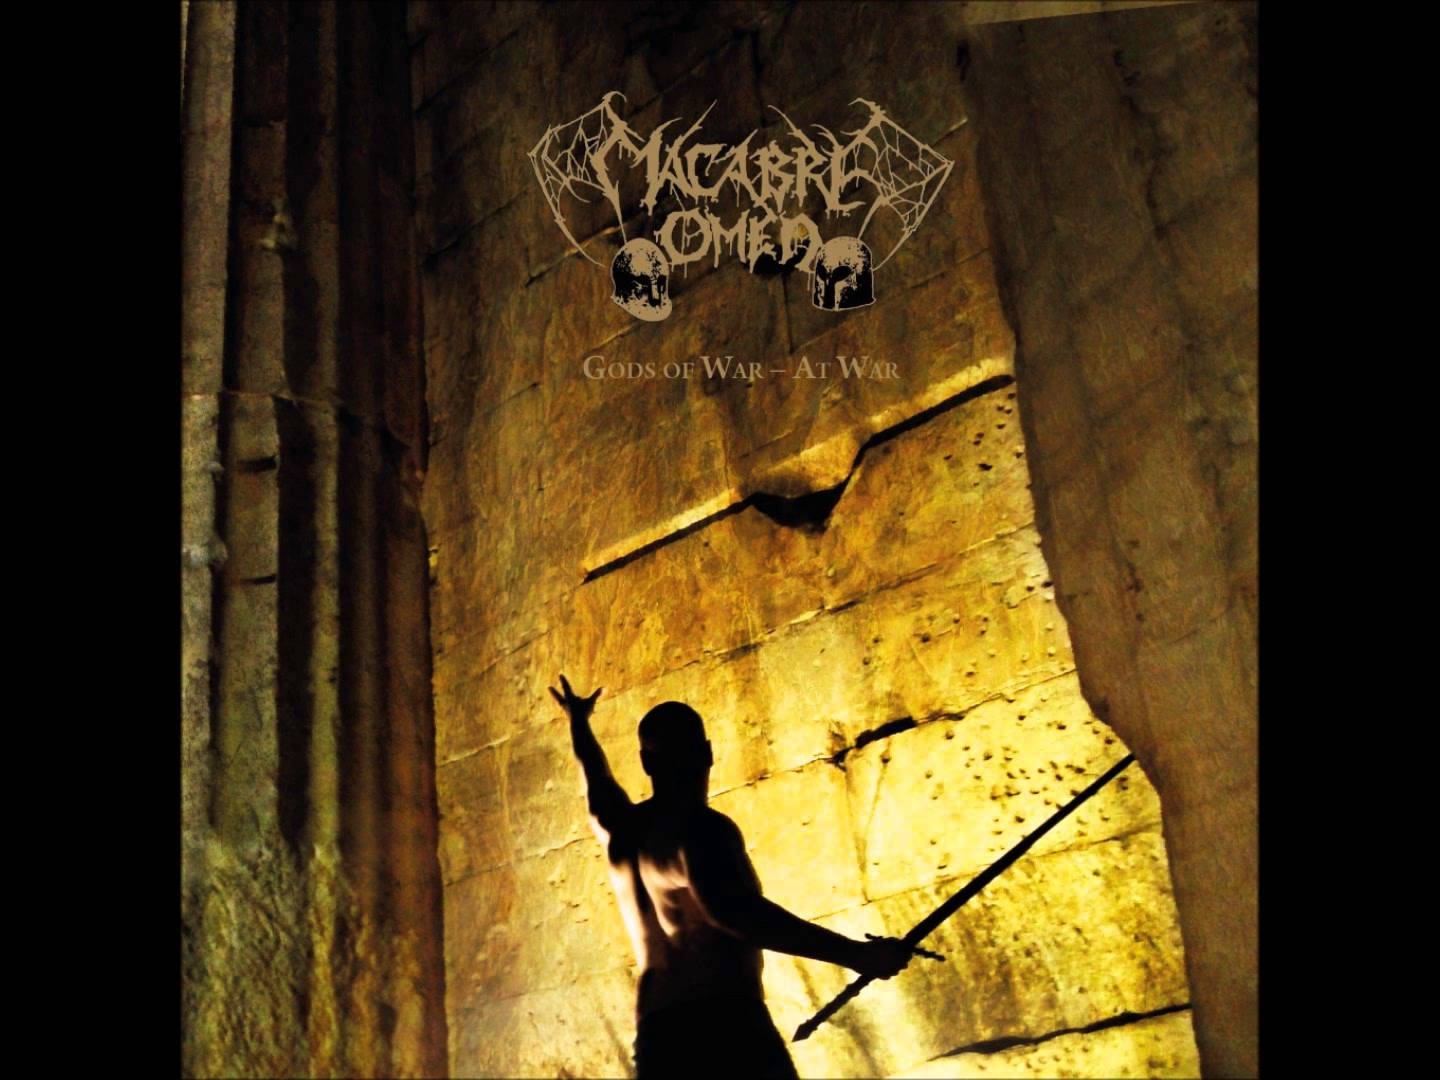 Things You Might Have Missed 2015: Macabre Omen – Gods of War – At War